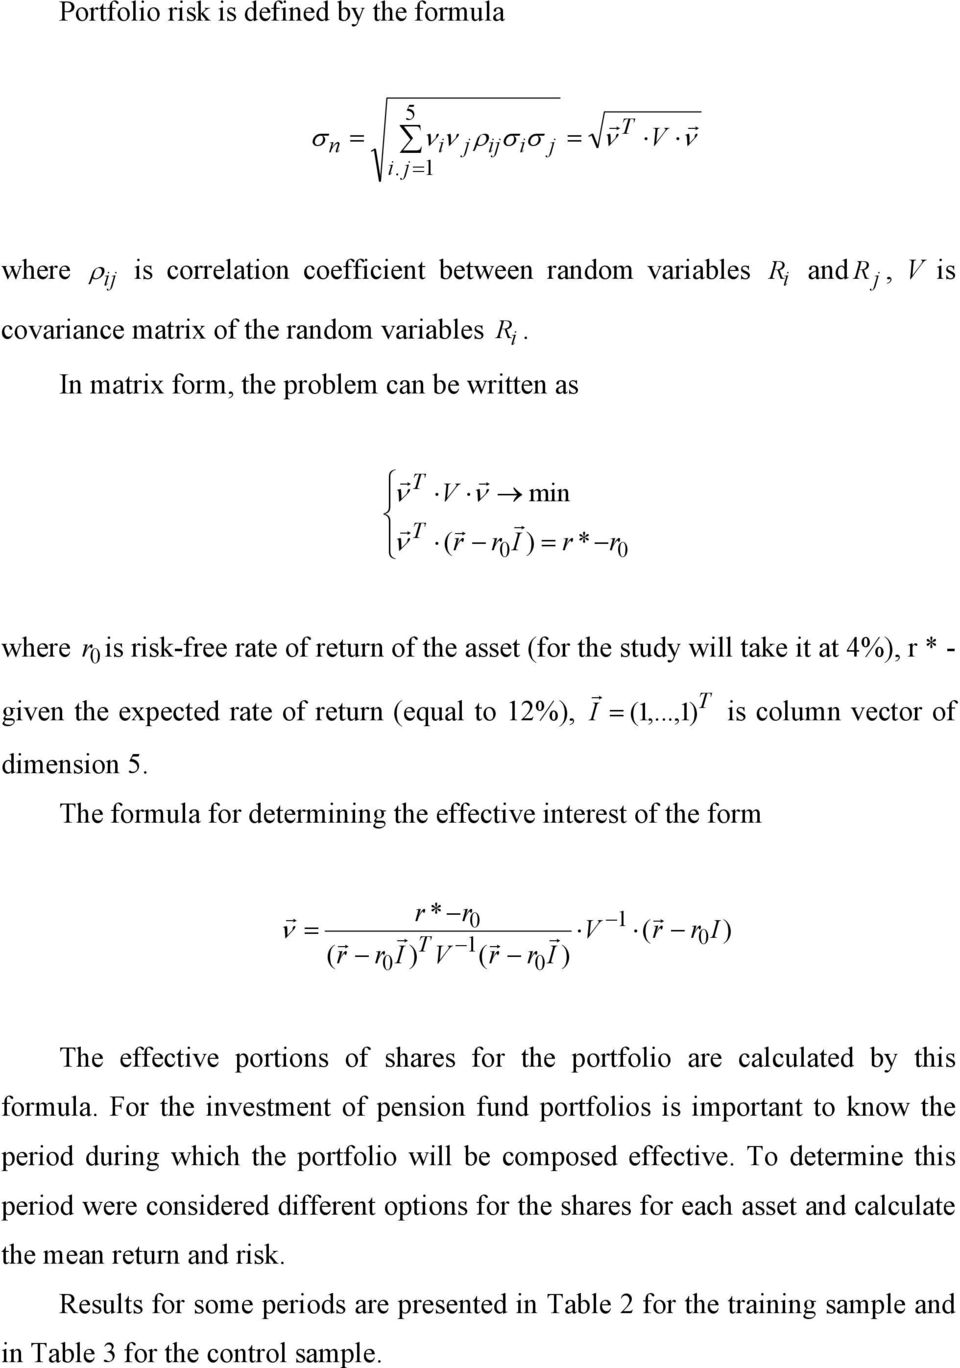 In matix fom, the poblem can be witten as ν ν V ν min ( I ) = 0 * 0 whee 0 is isk-fee ate of etun of the asset (fo the study will take it at 4%), * - given the expected ate of etun (equal to 12%), I